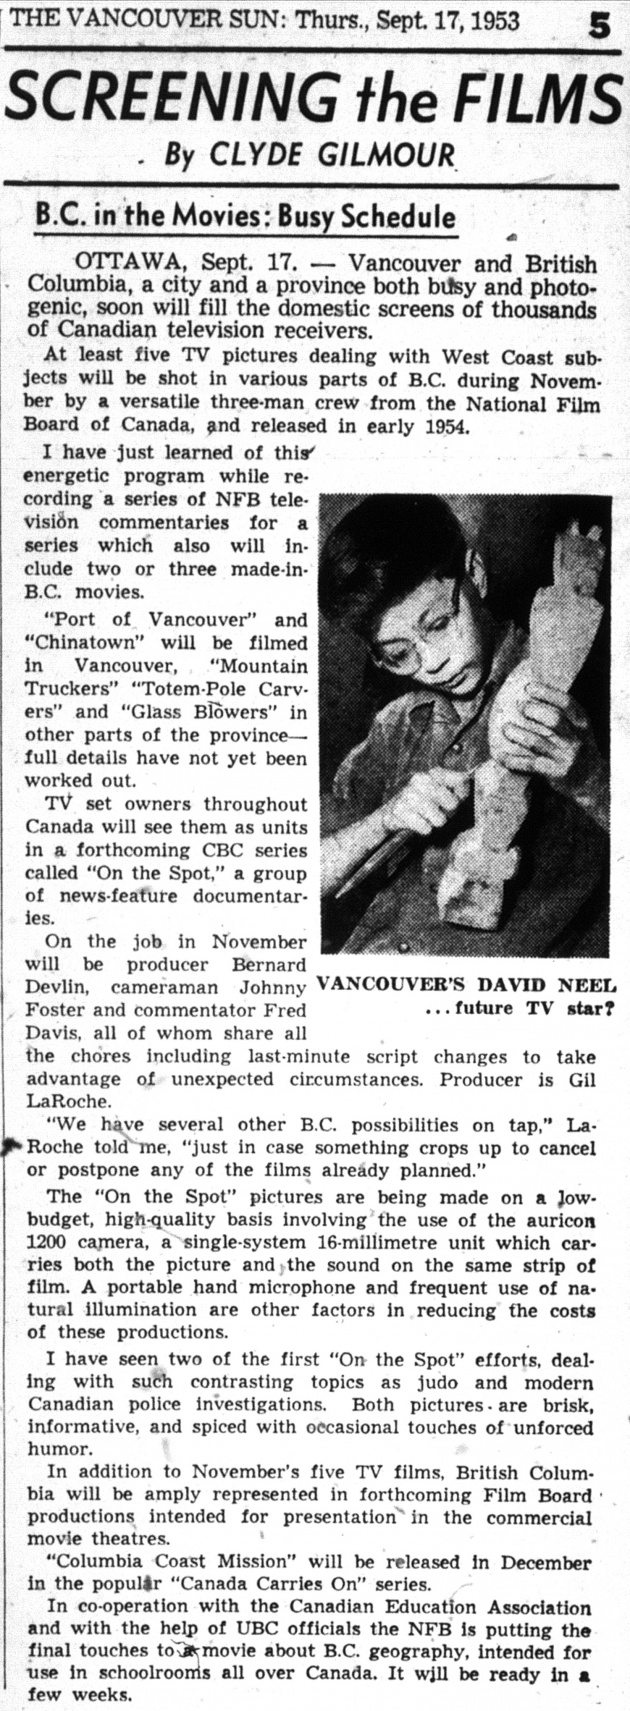 Screening the Films, Vancouver Sun, September 17, 1953 (page 5)